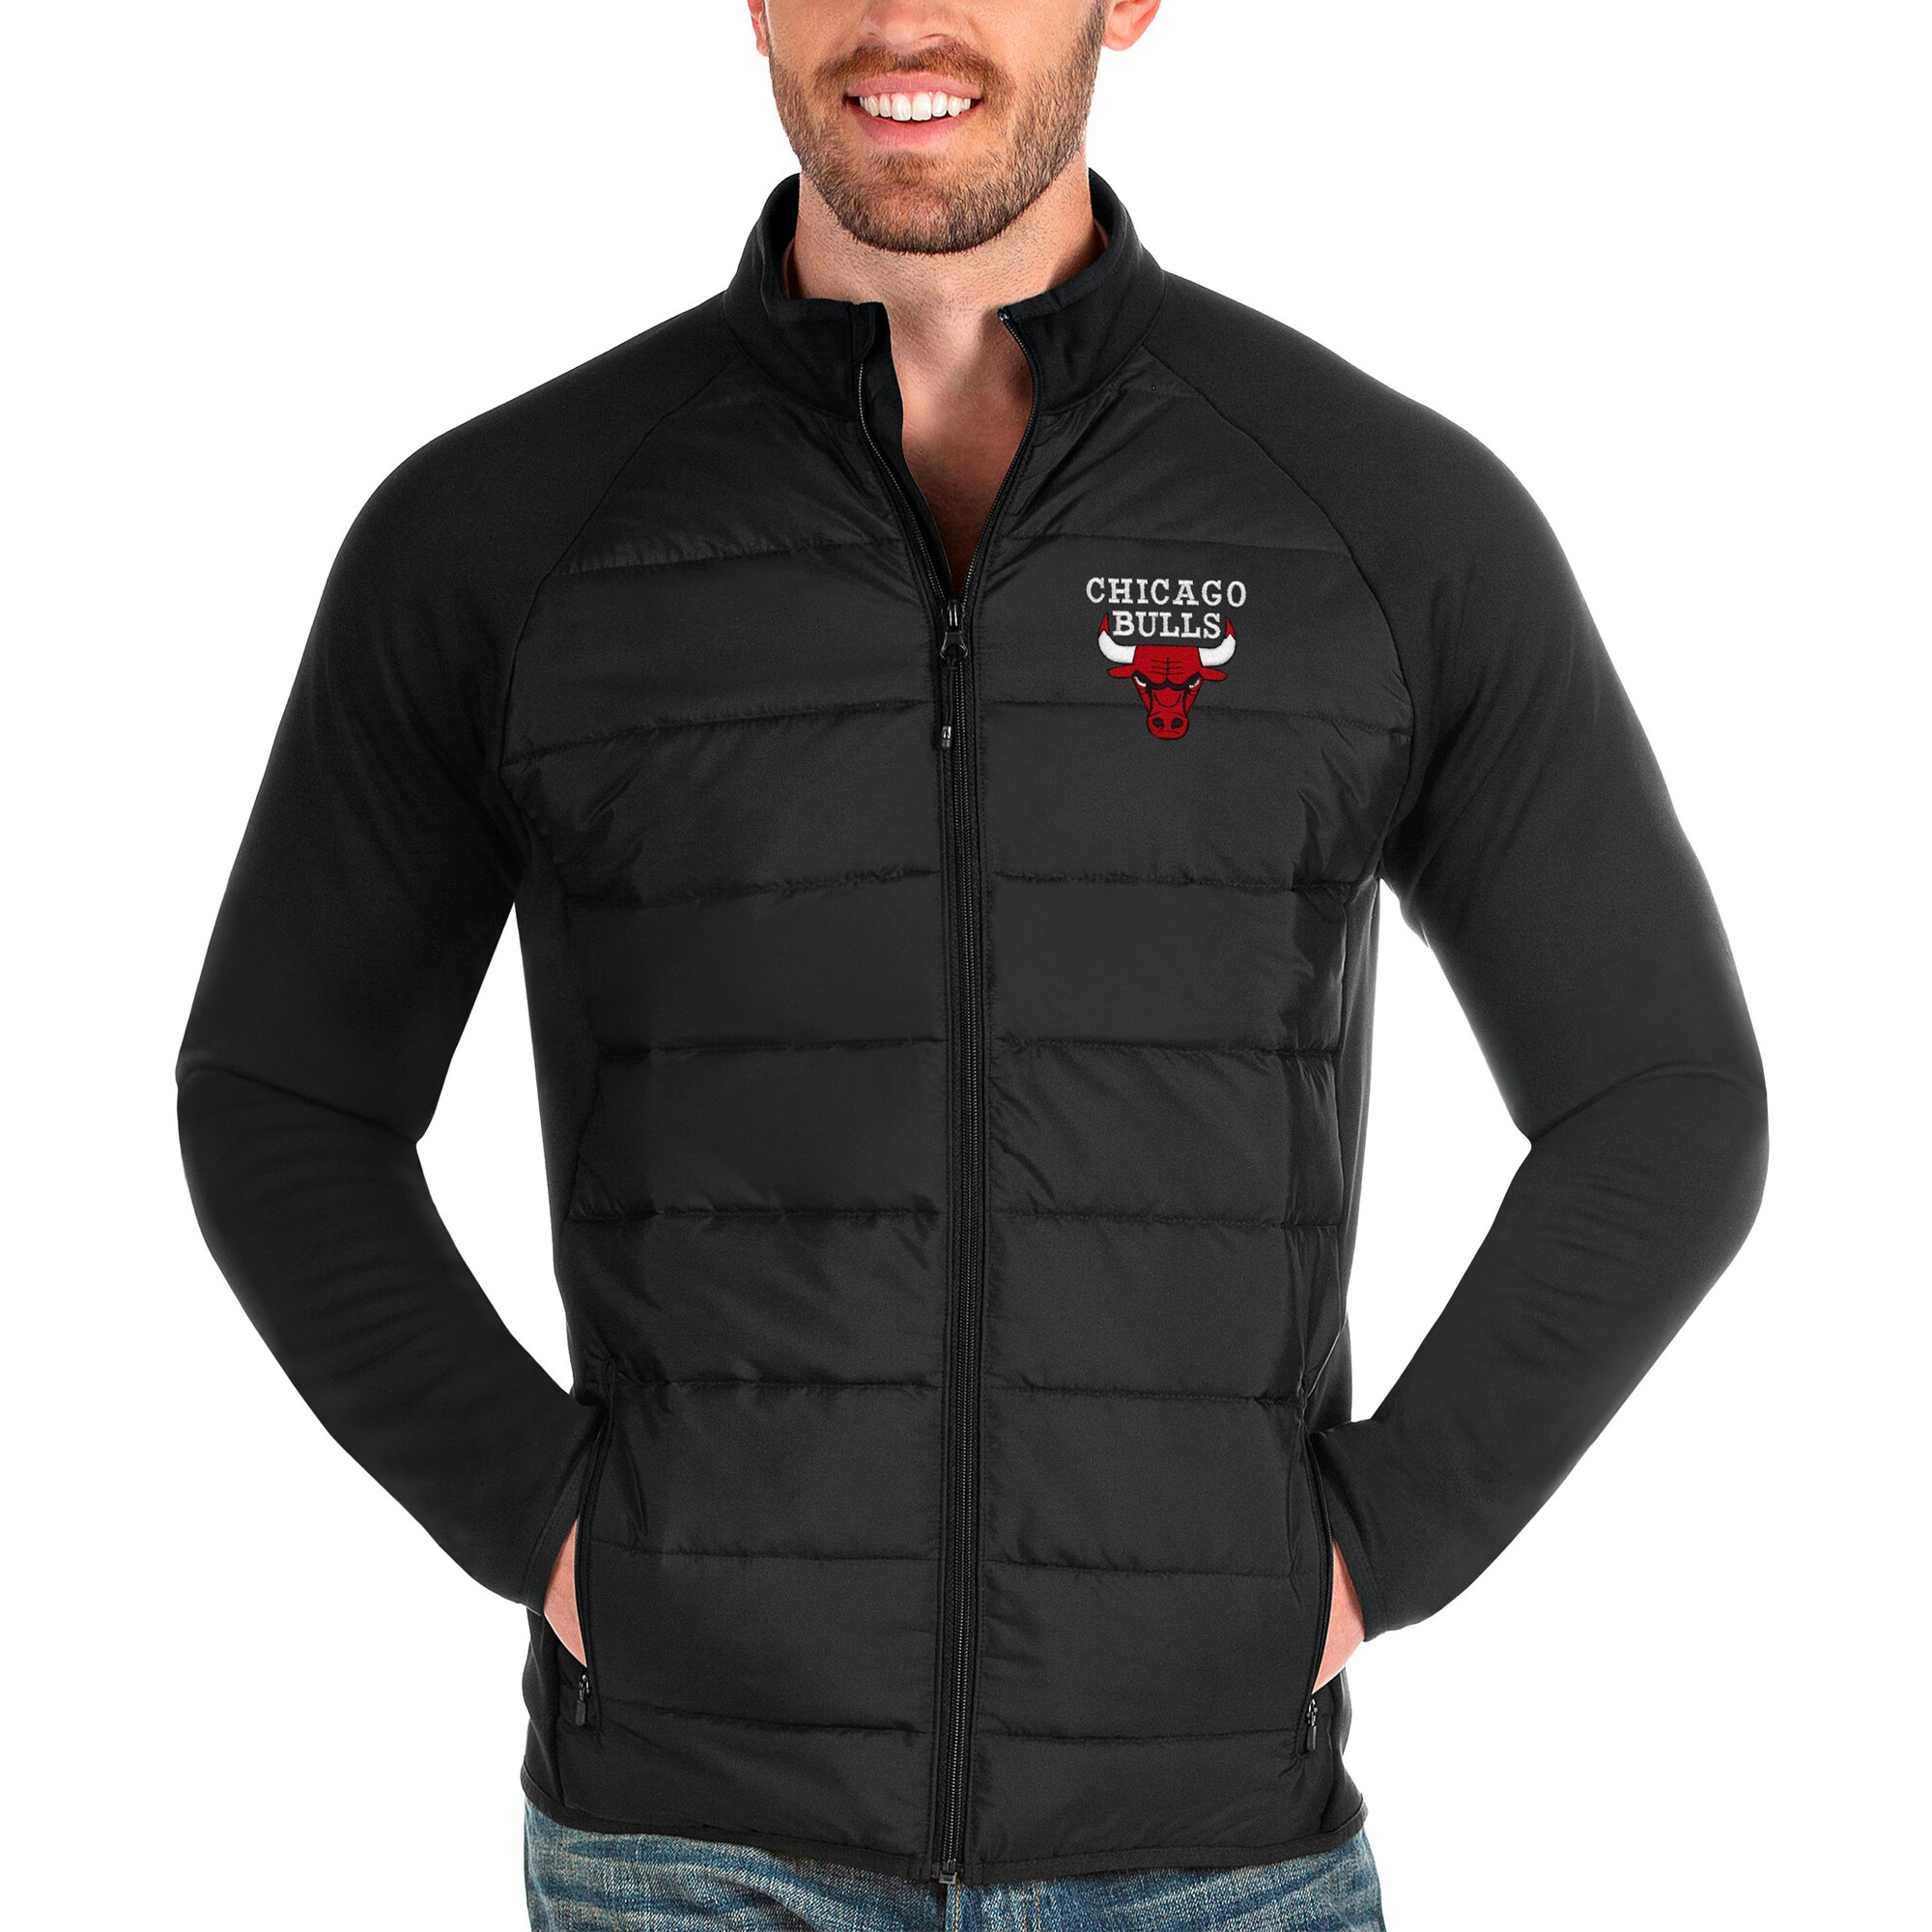 Chicago Bulls Antigua Altitude Full-Zip Jacket - Black